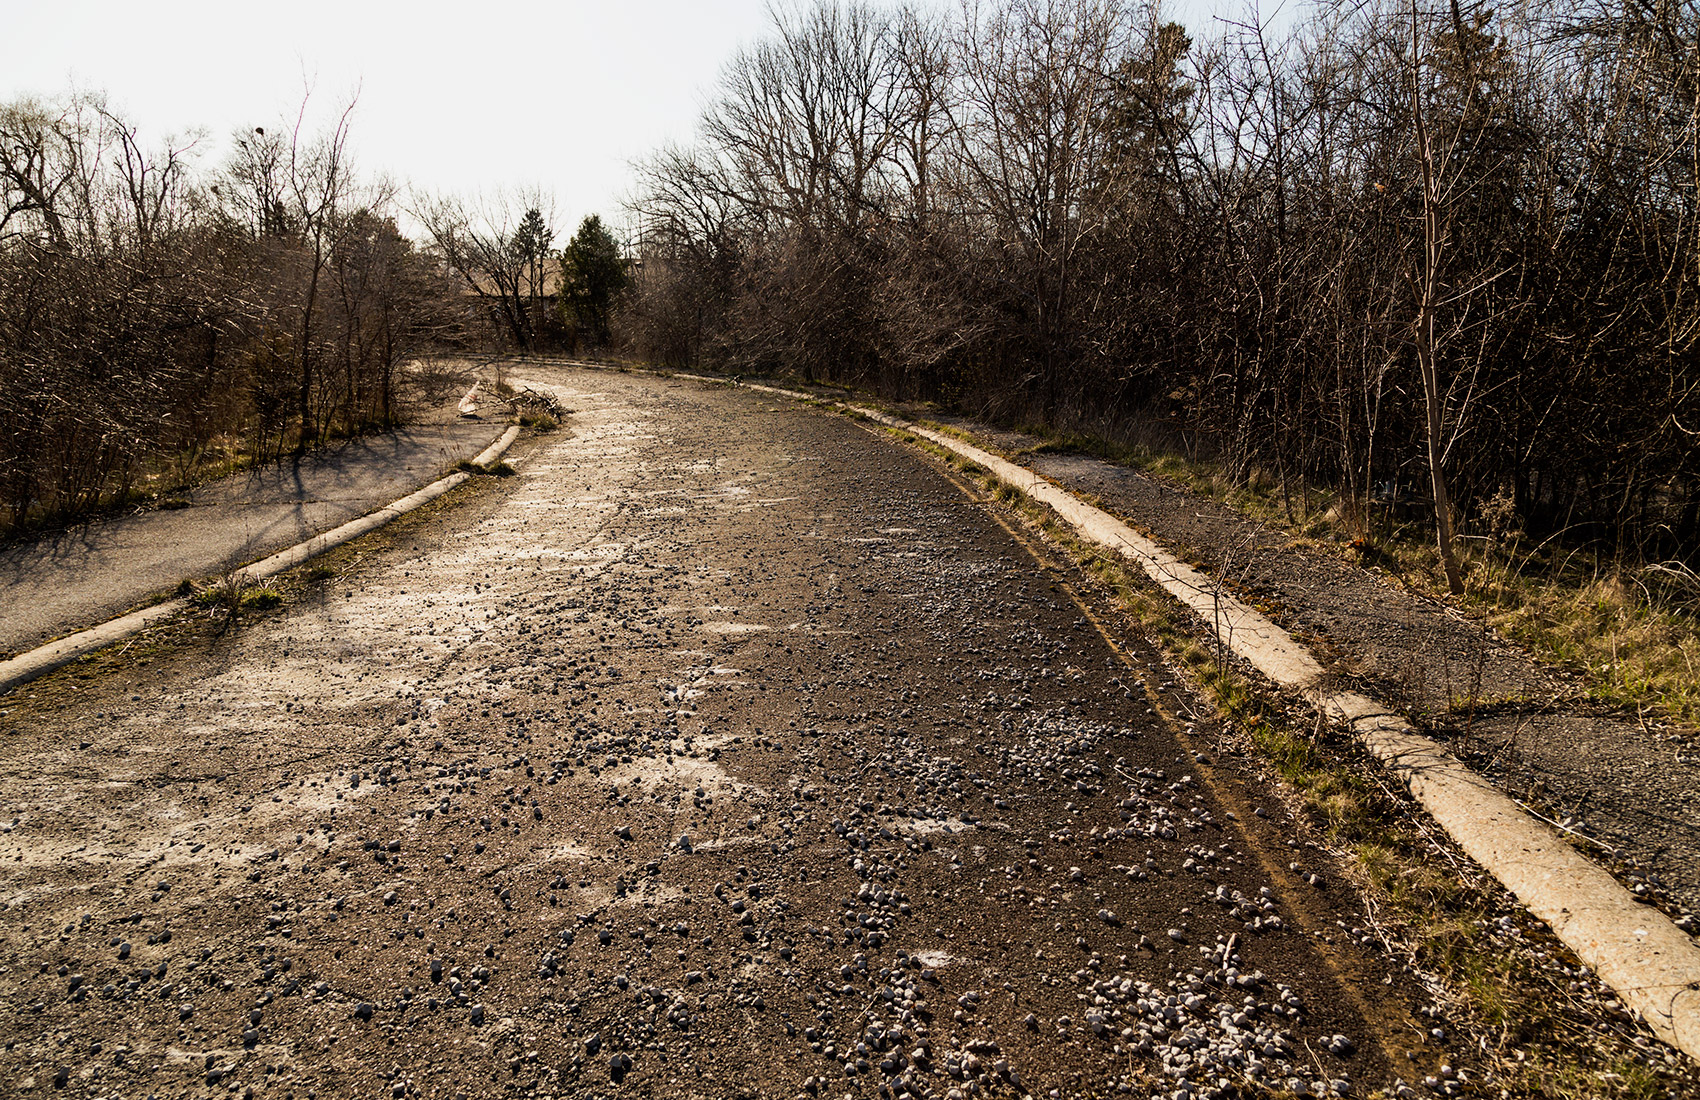 20160419. Yes, Toronto has an abandoned highway on-ramp.